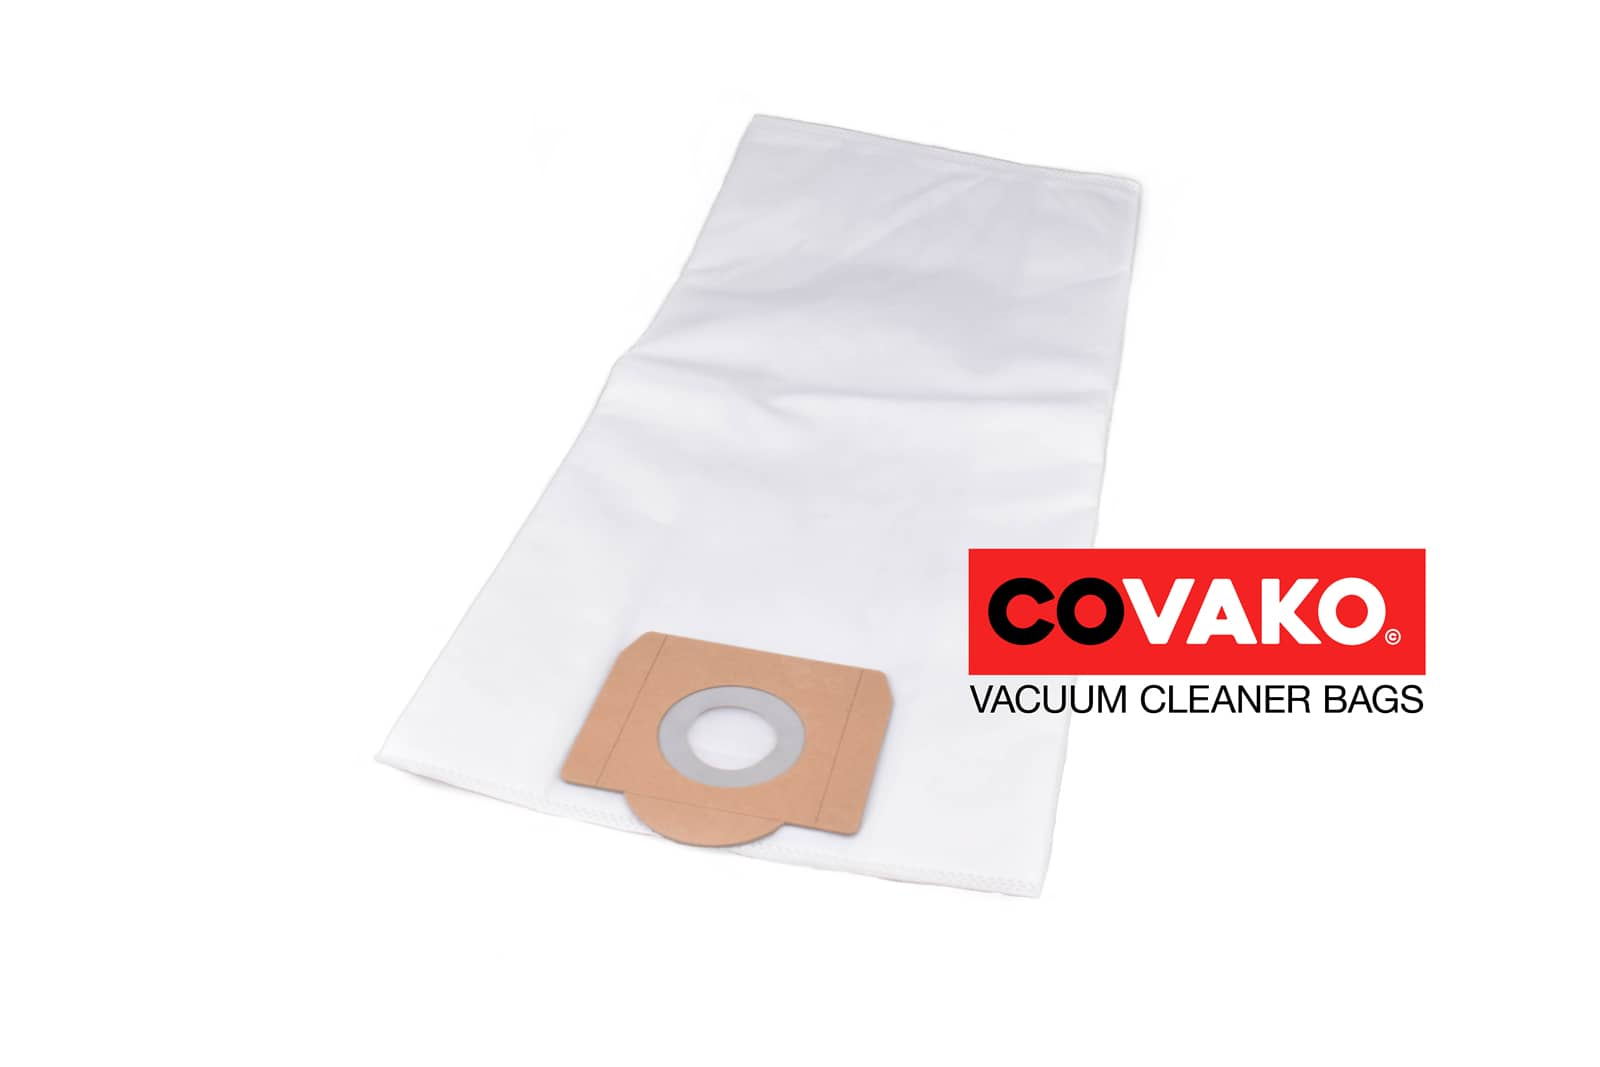 Soteco Dakota Compact 101 Spot / Synthesis - Soteco vacuum cleaner bags